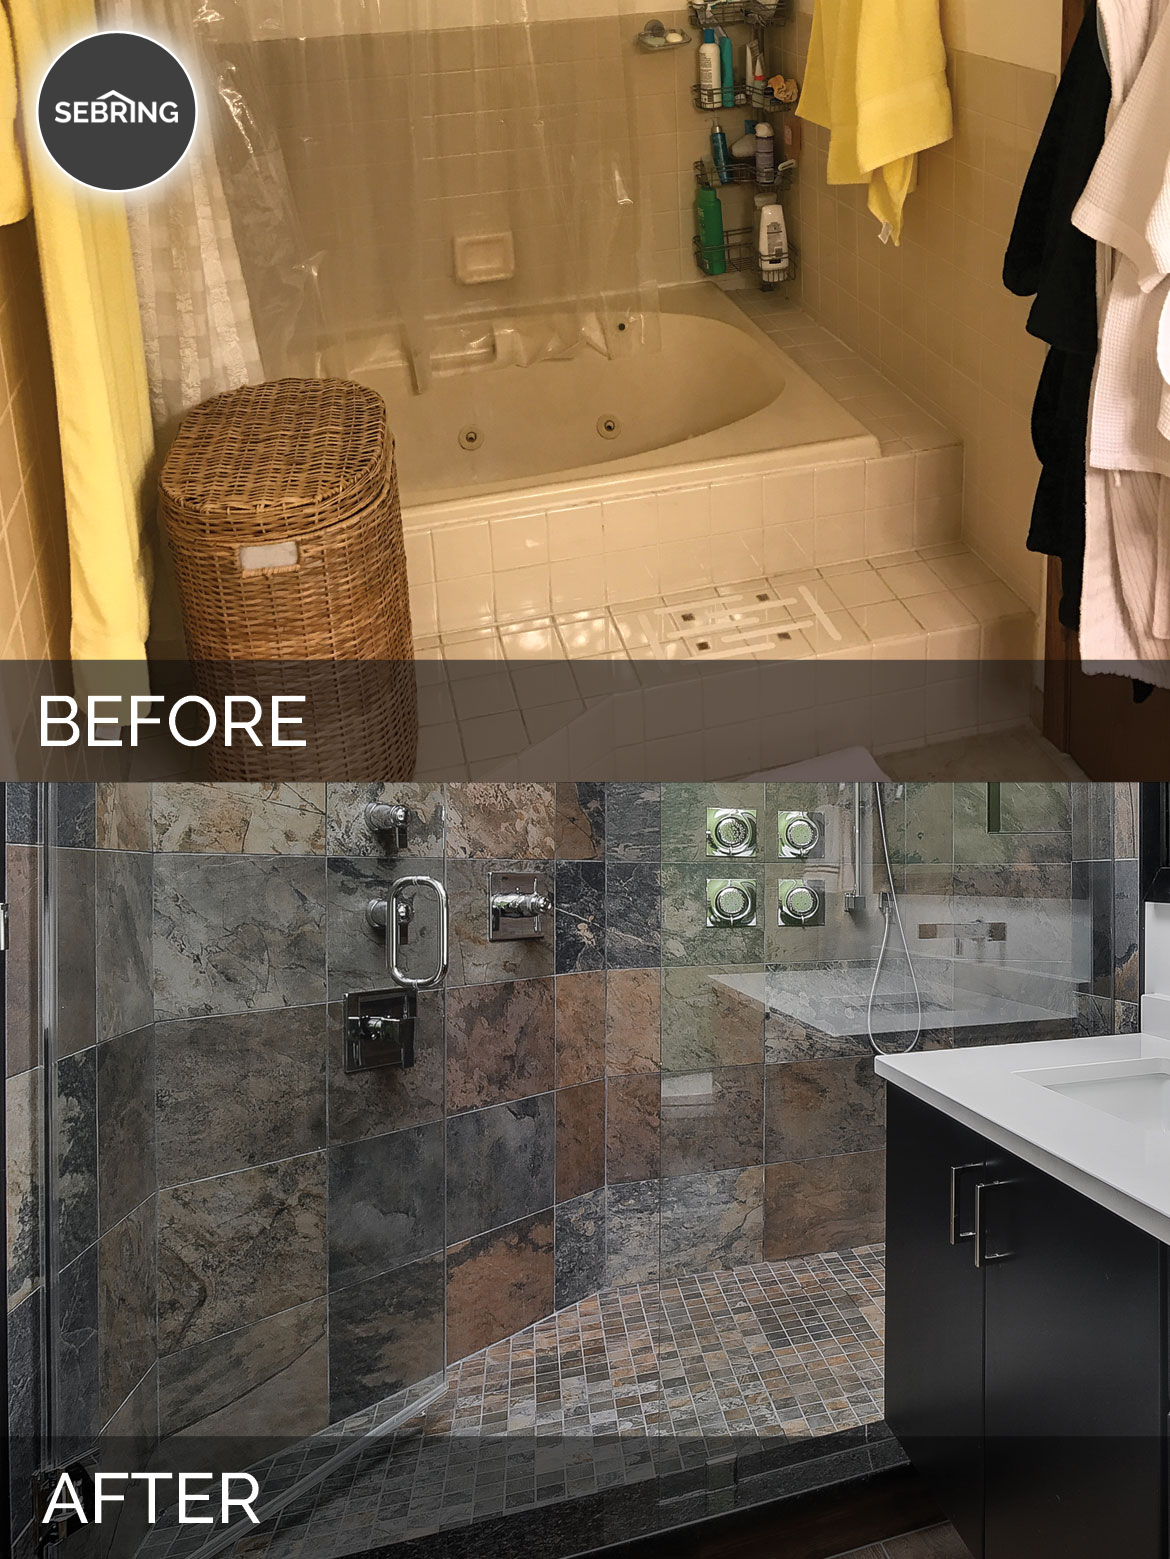 Clay Mia 39 S Master Bathroom Before After Pictures Home Remodeling Contractors Sebring